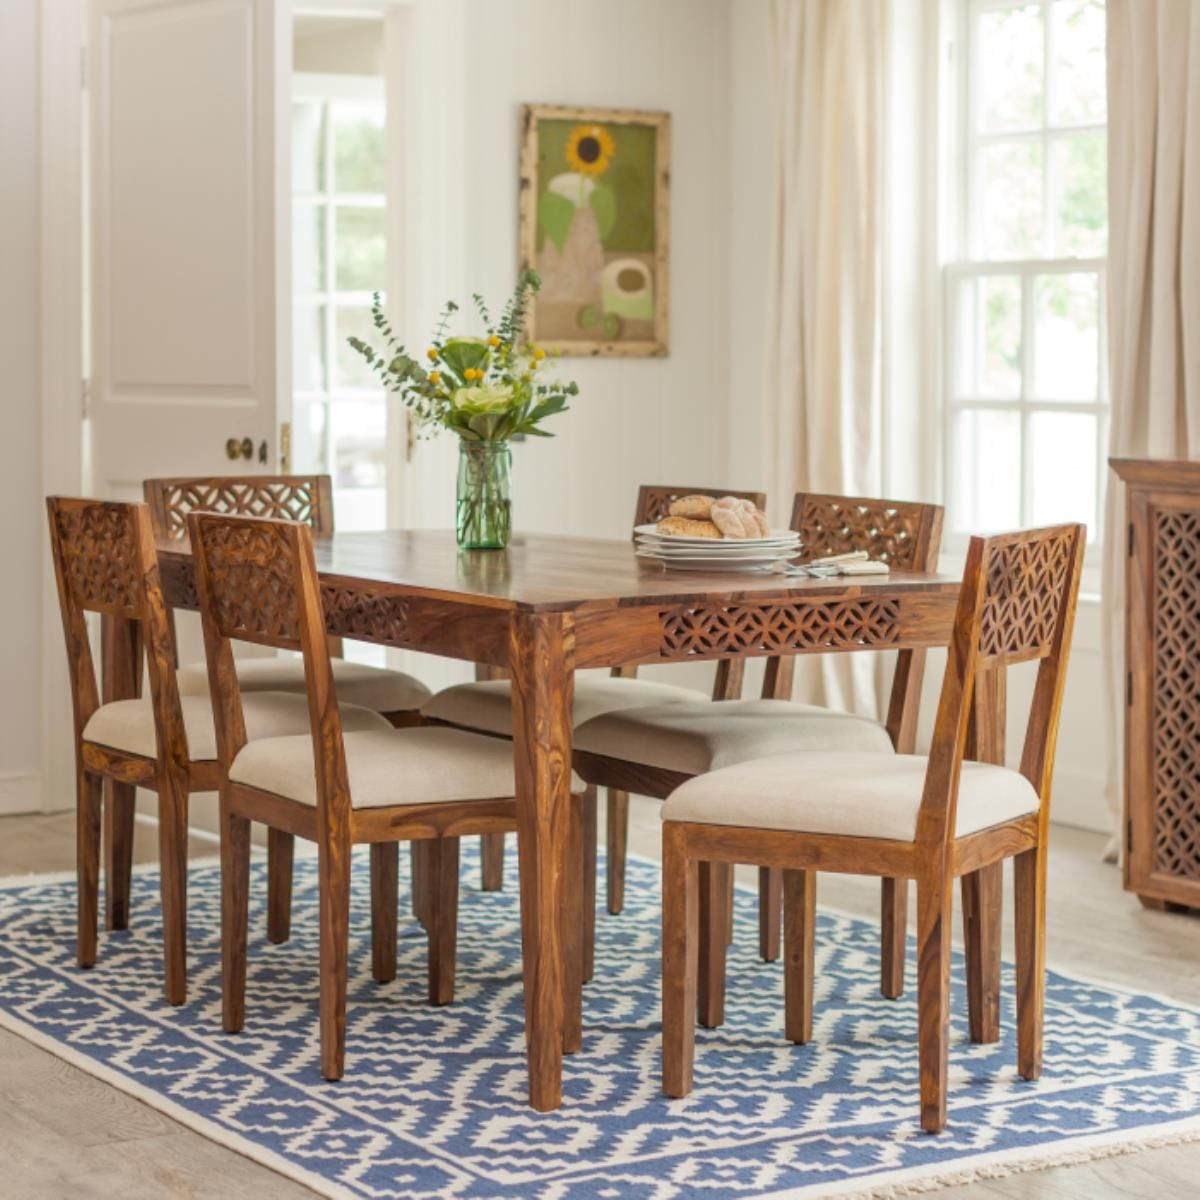 Jasmeen dining table dark wood dining table family dining rooms